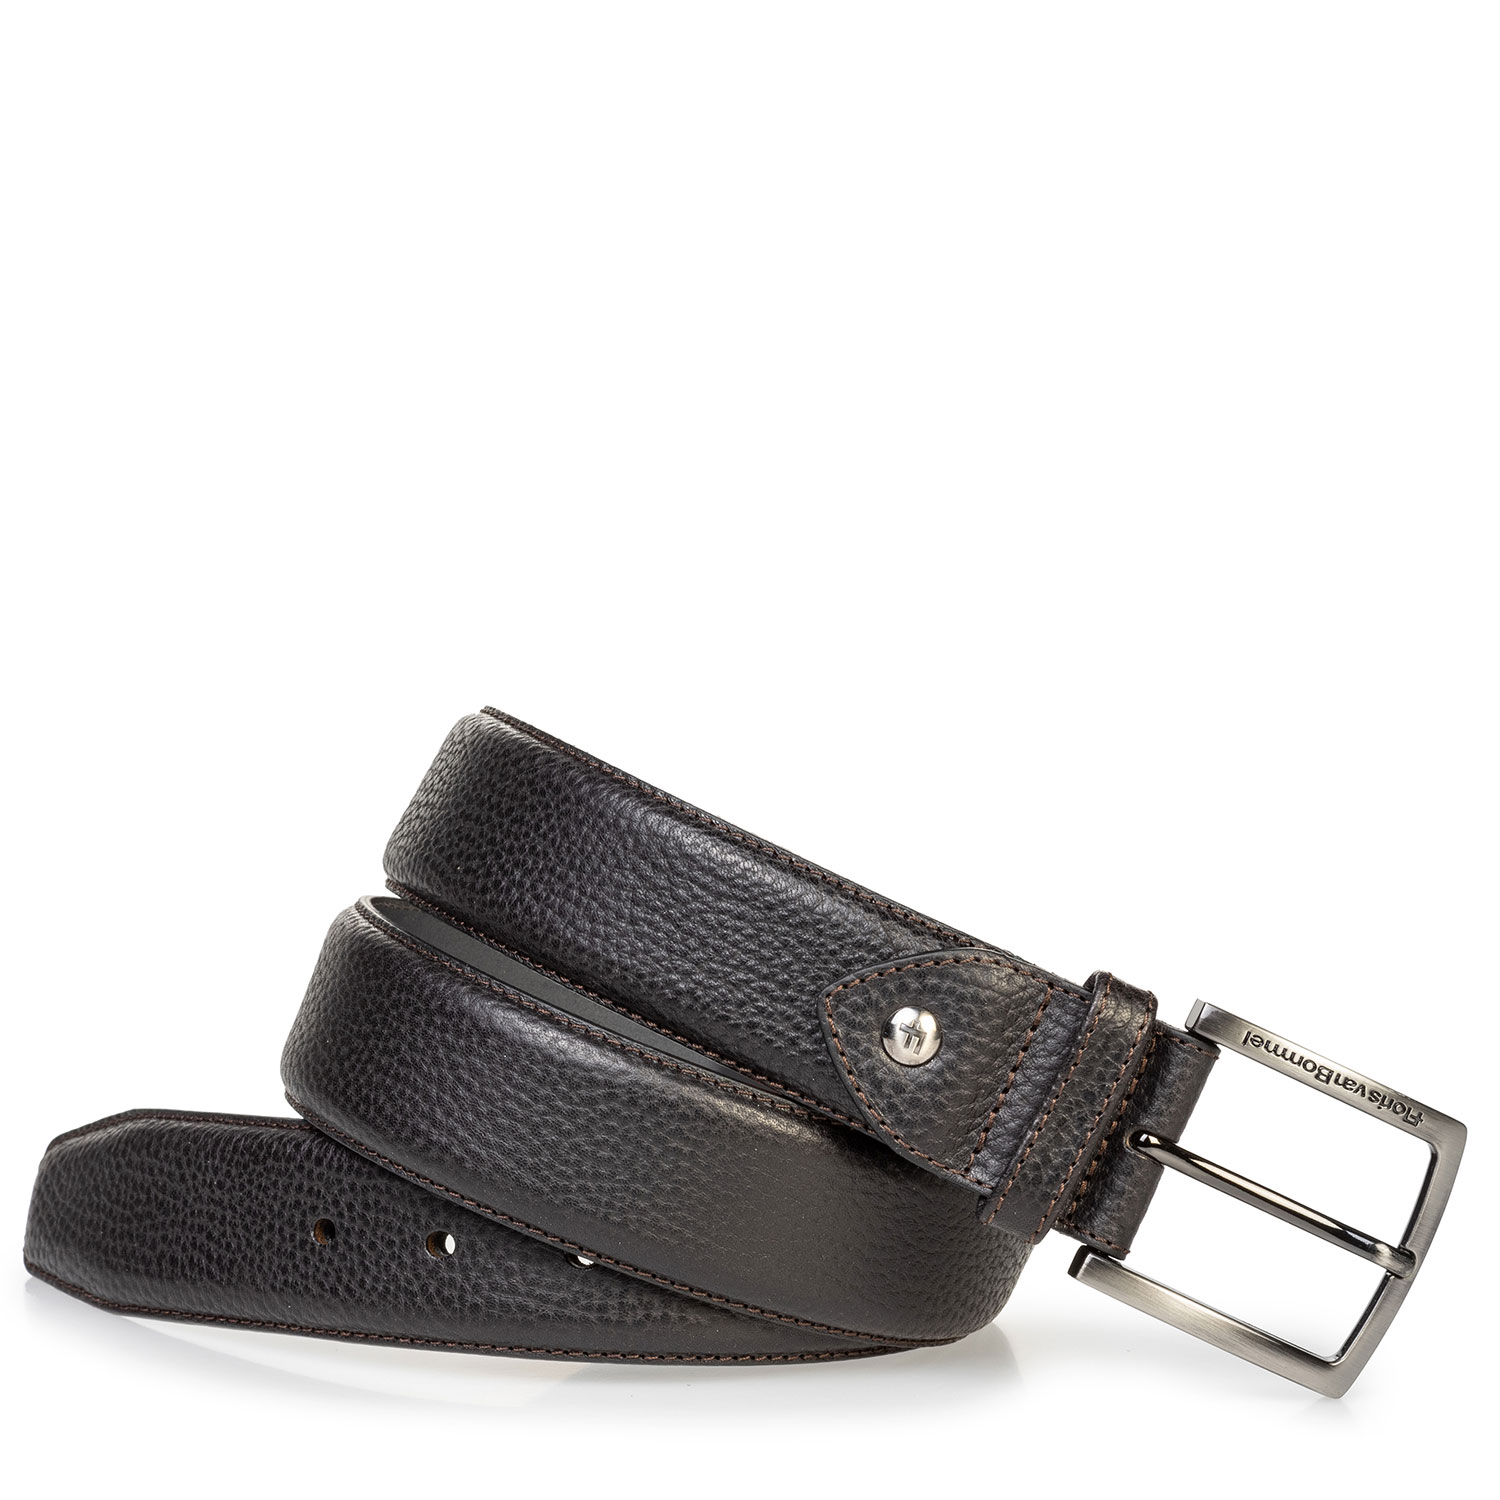 75202/64 - Black leather belt with structured pattern